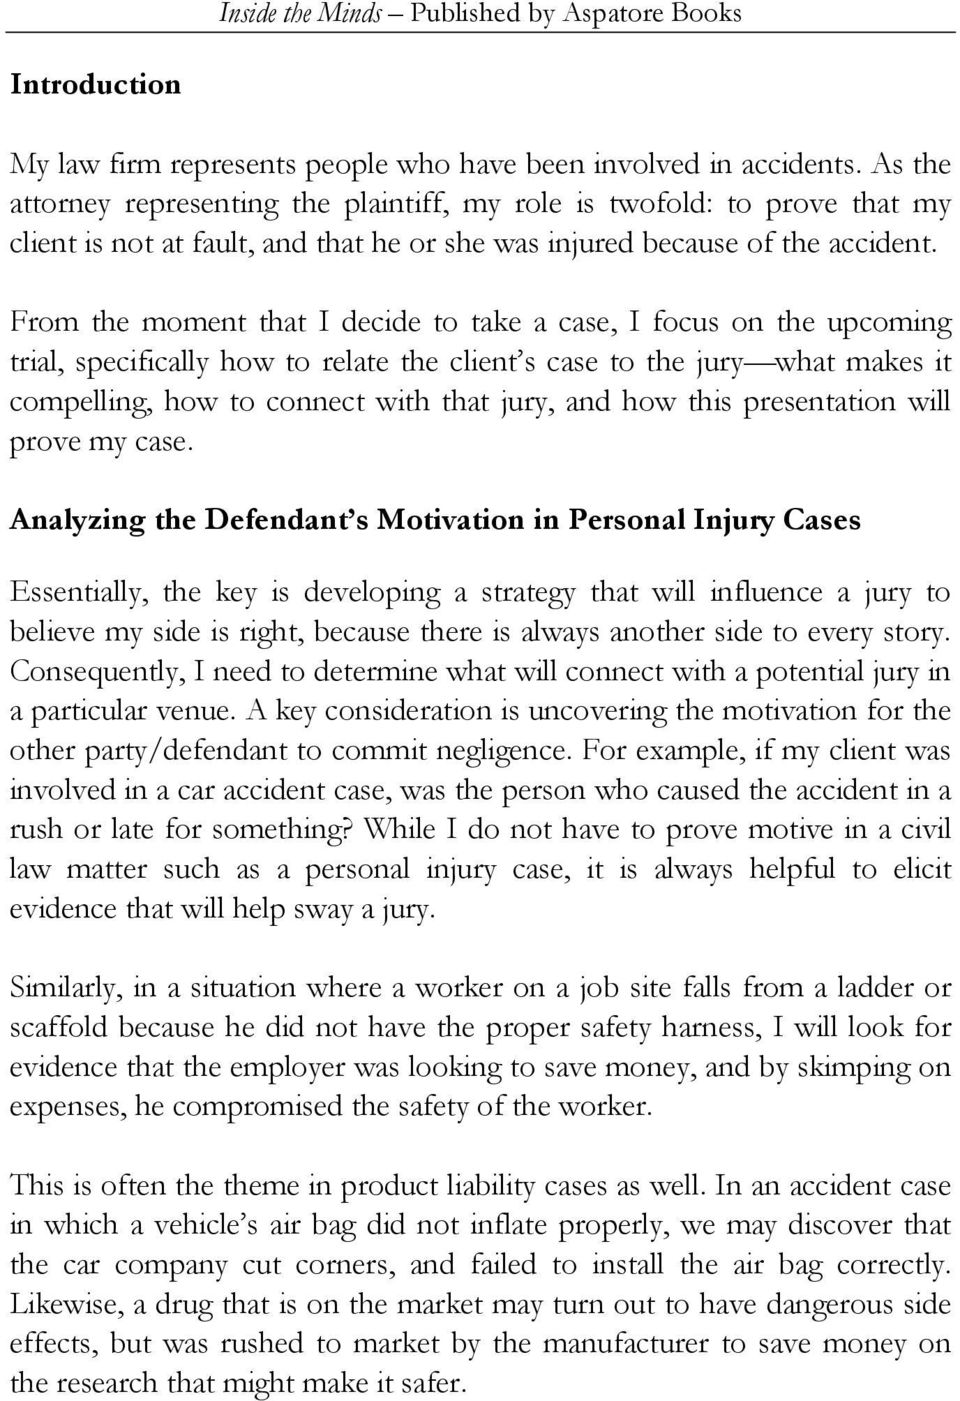 From the moment that I decide to take a case, I focus on the upcoming trial, specifically how to relate the client s case to the jury what makes it compelling, how to connect with that jury, and how